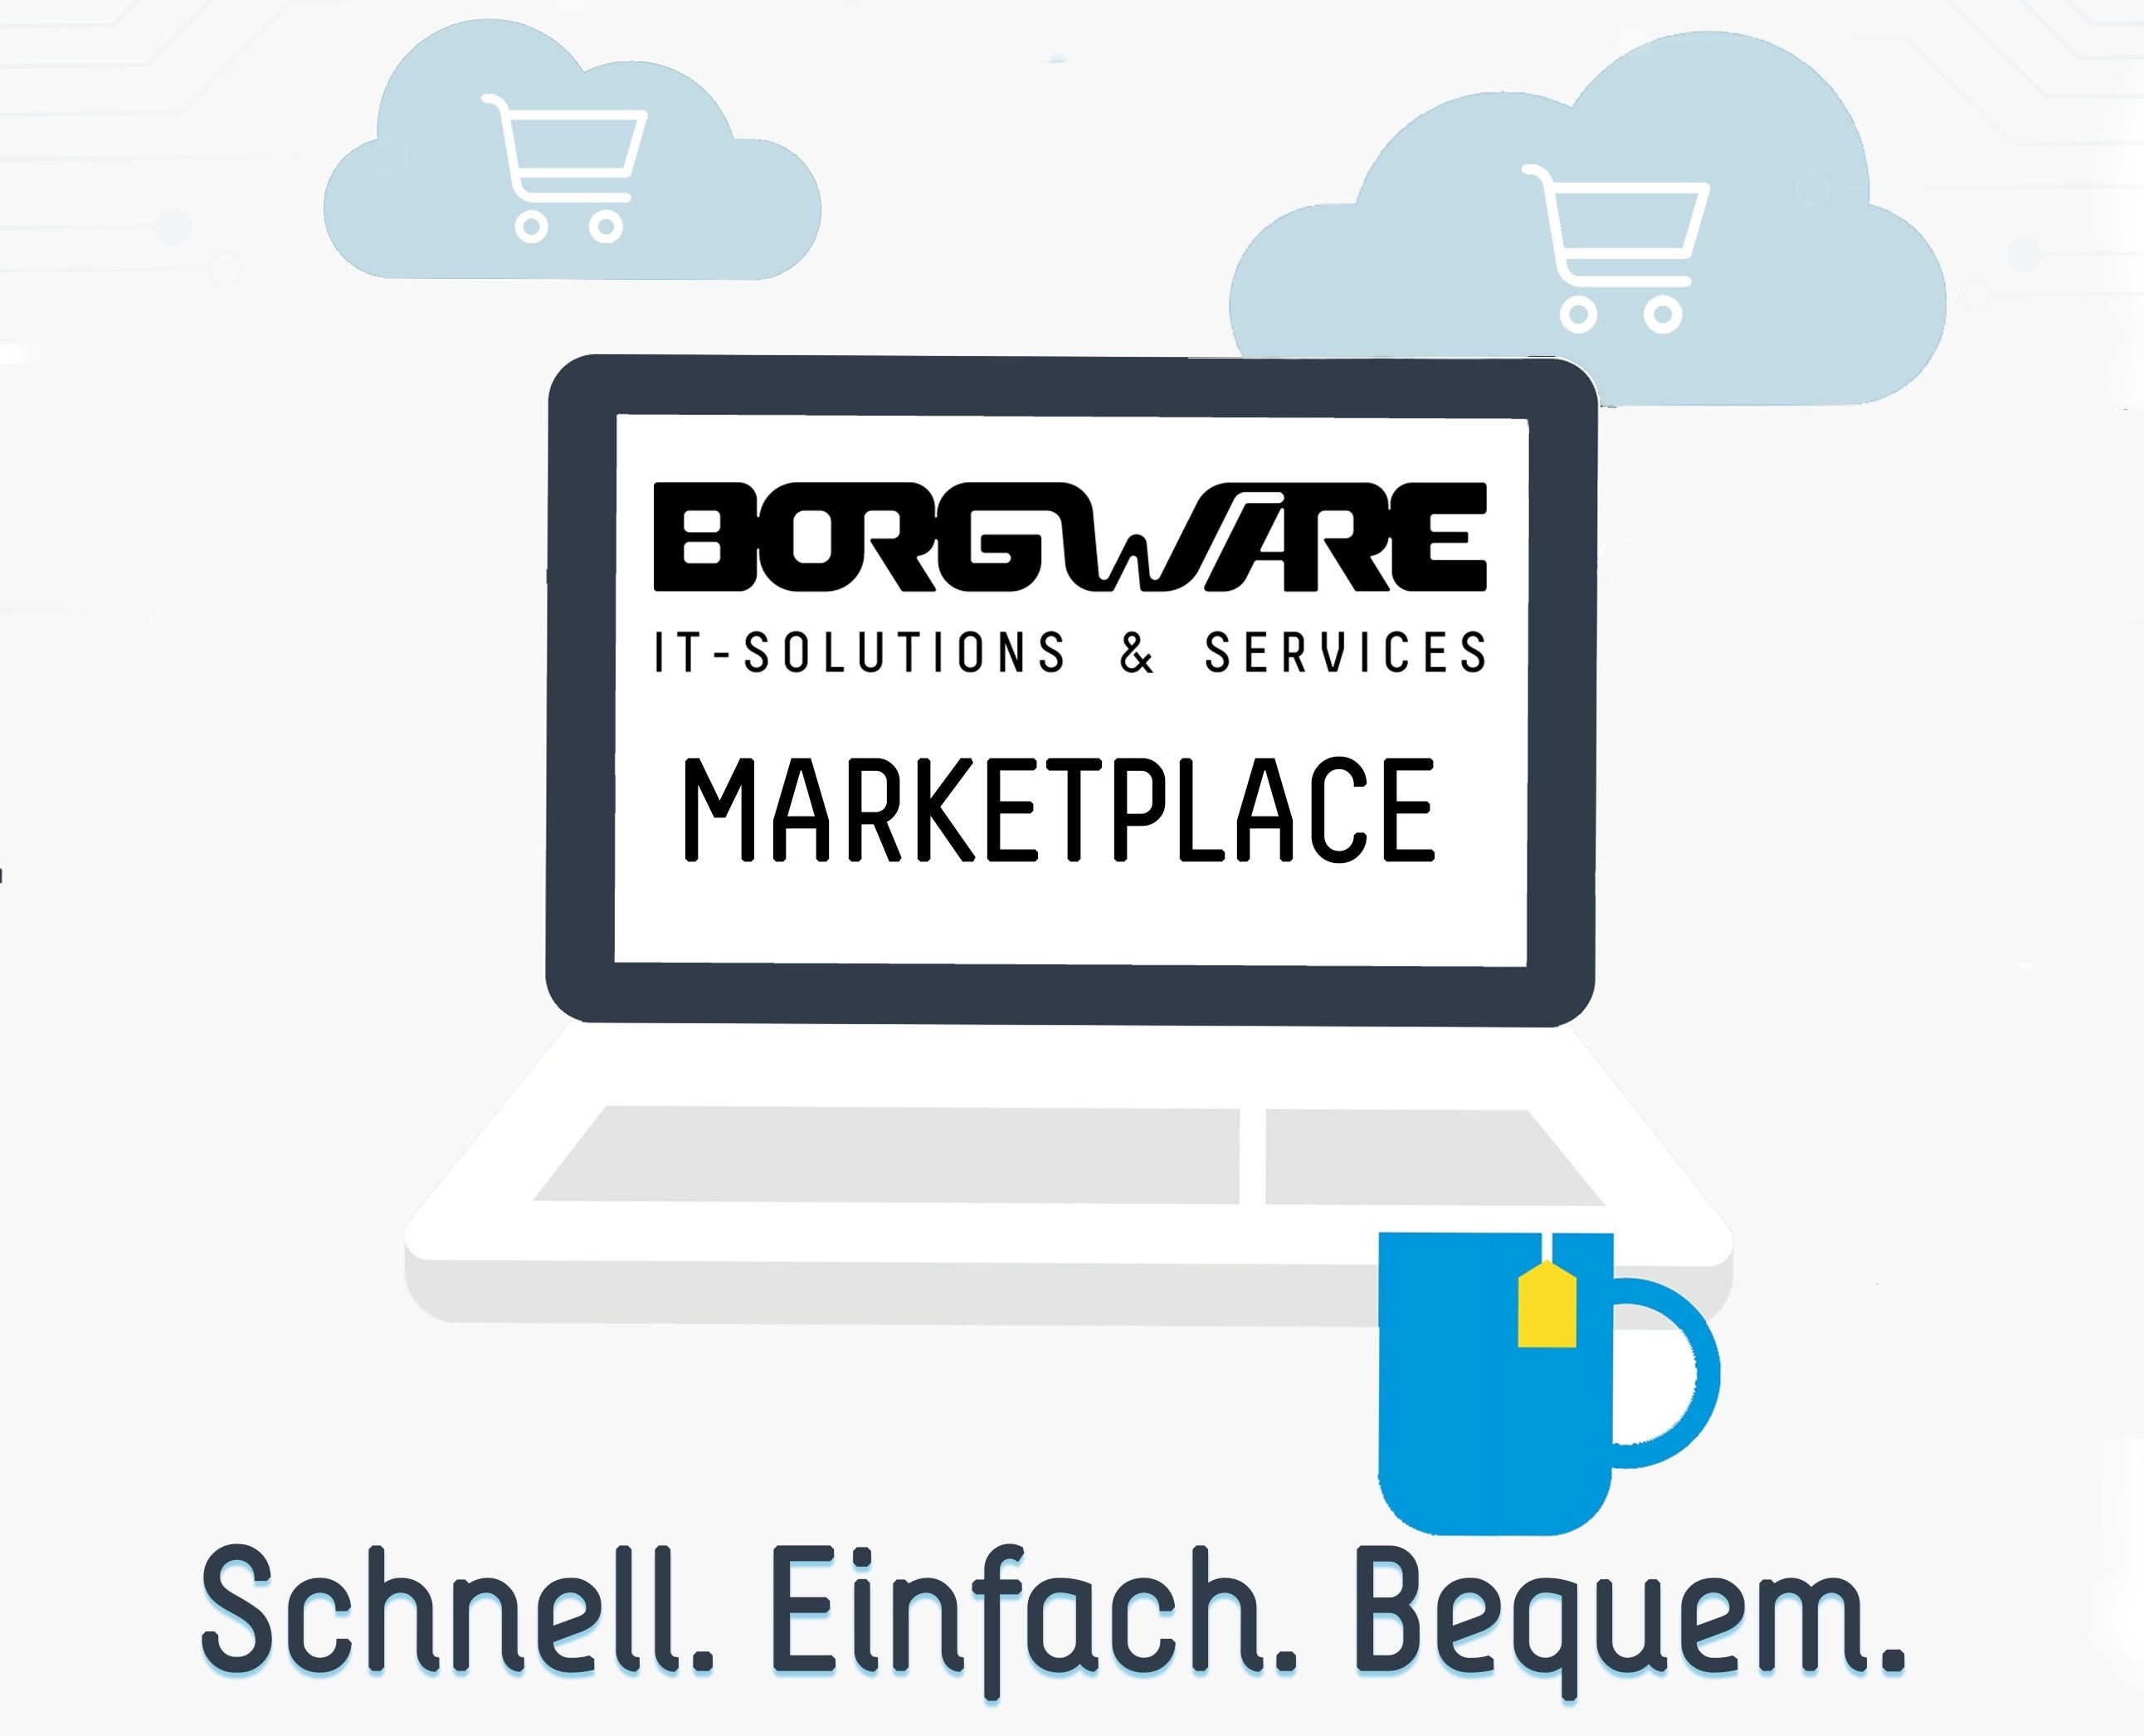 BORGWARE Marketplace